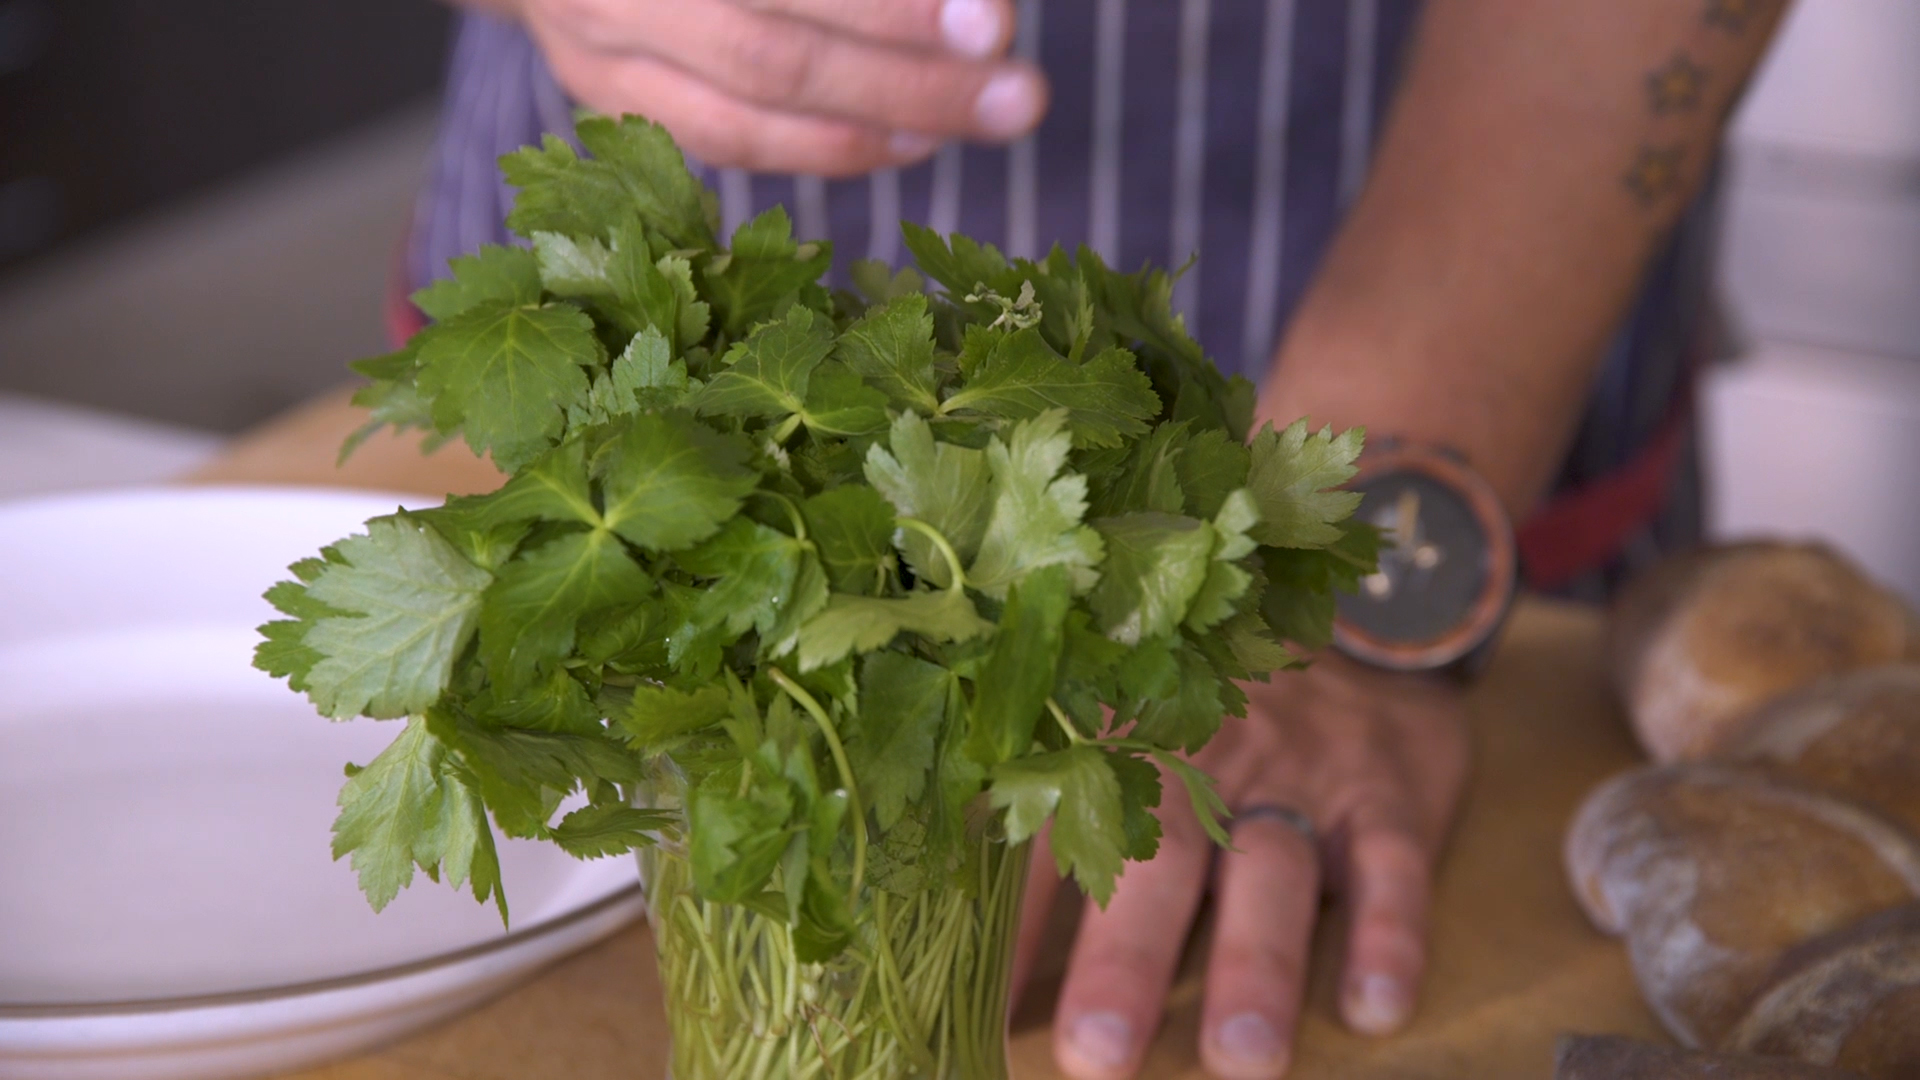 Chris Cosentino's pesto is made with mitsuba, which is sometimes known as Japanese parsley.